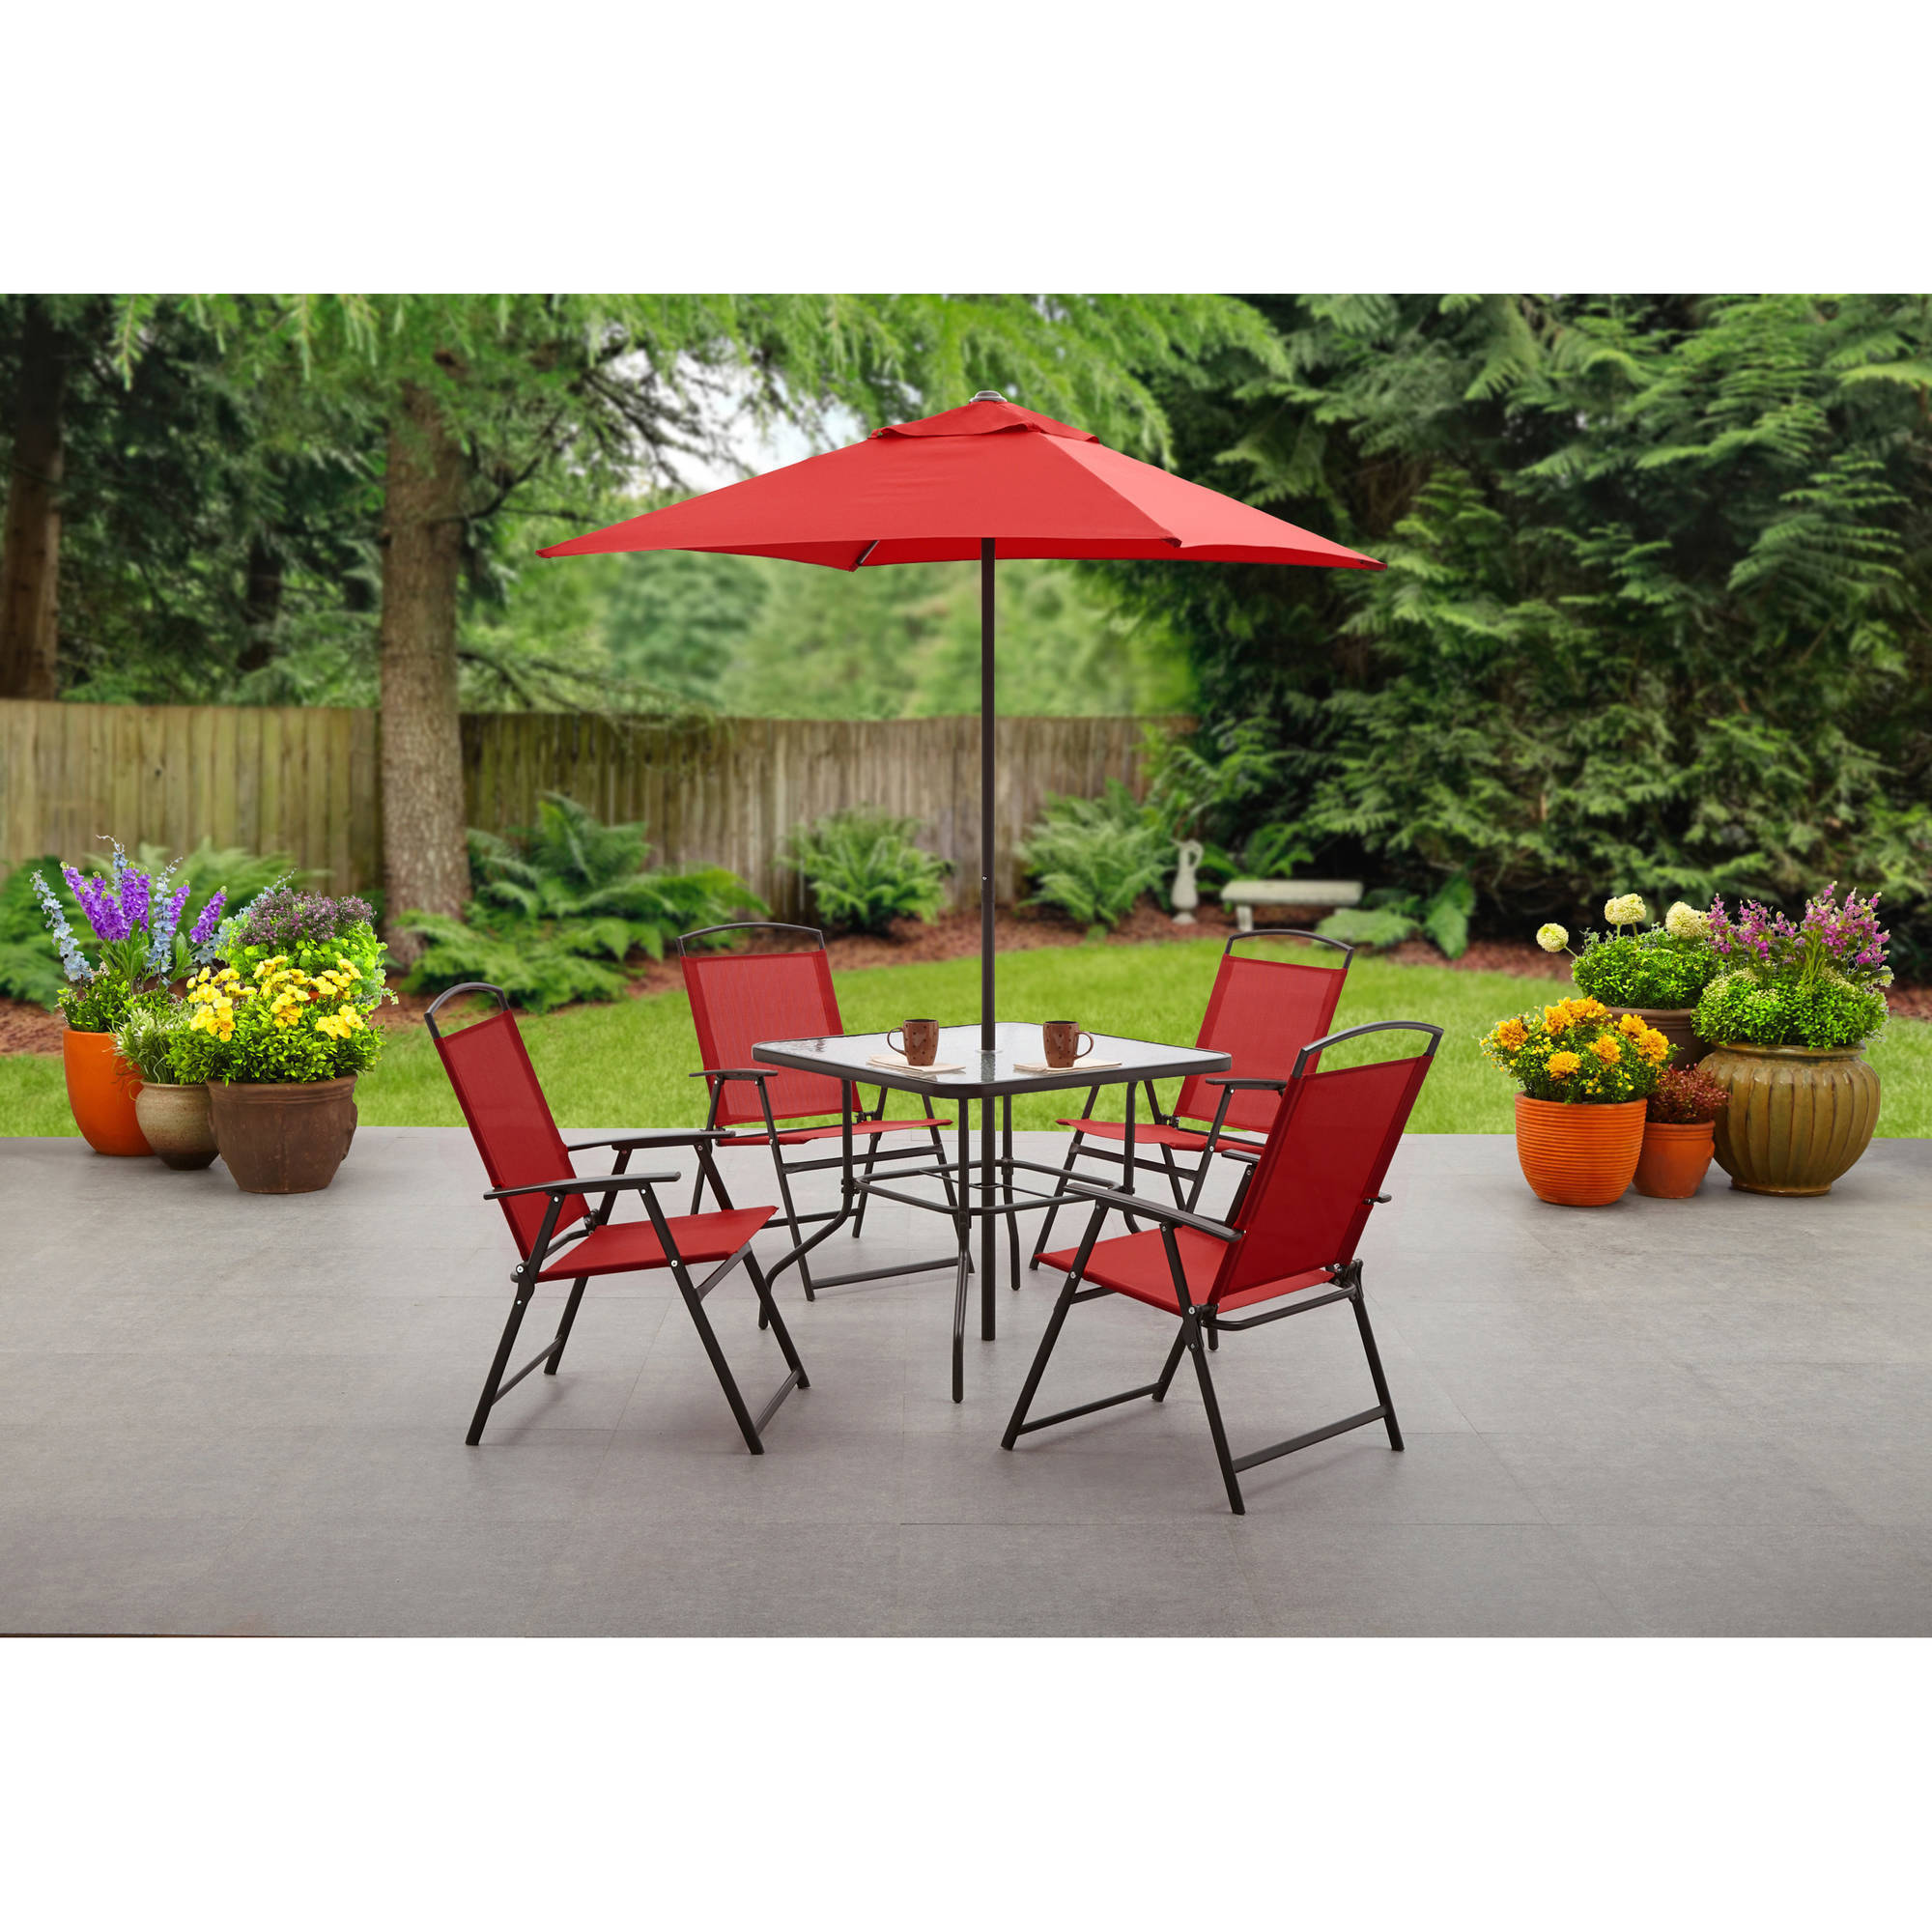 furniture amazing mainstays patio for your outdoor design with perfect sling folding chair and bedding side table bench cushions better umbrella square coffee pottery barn nate